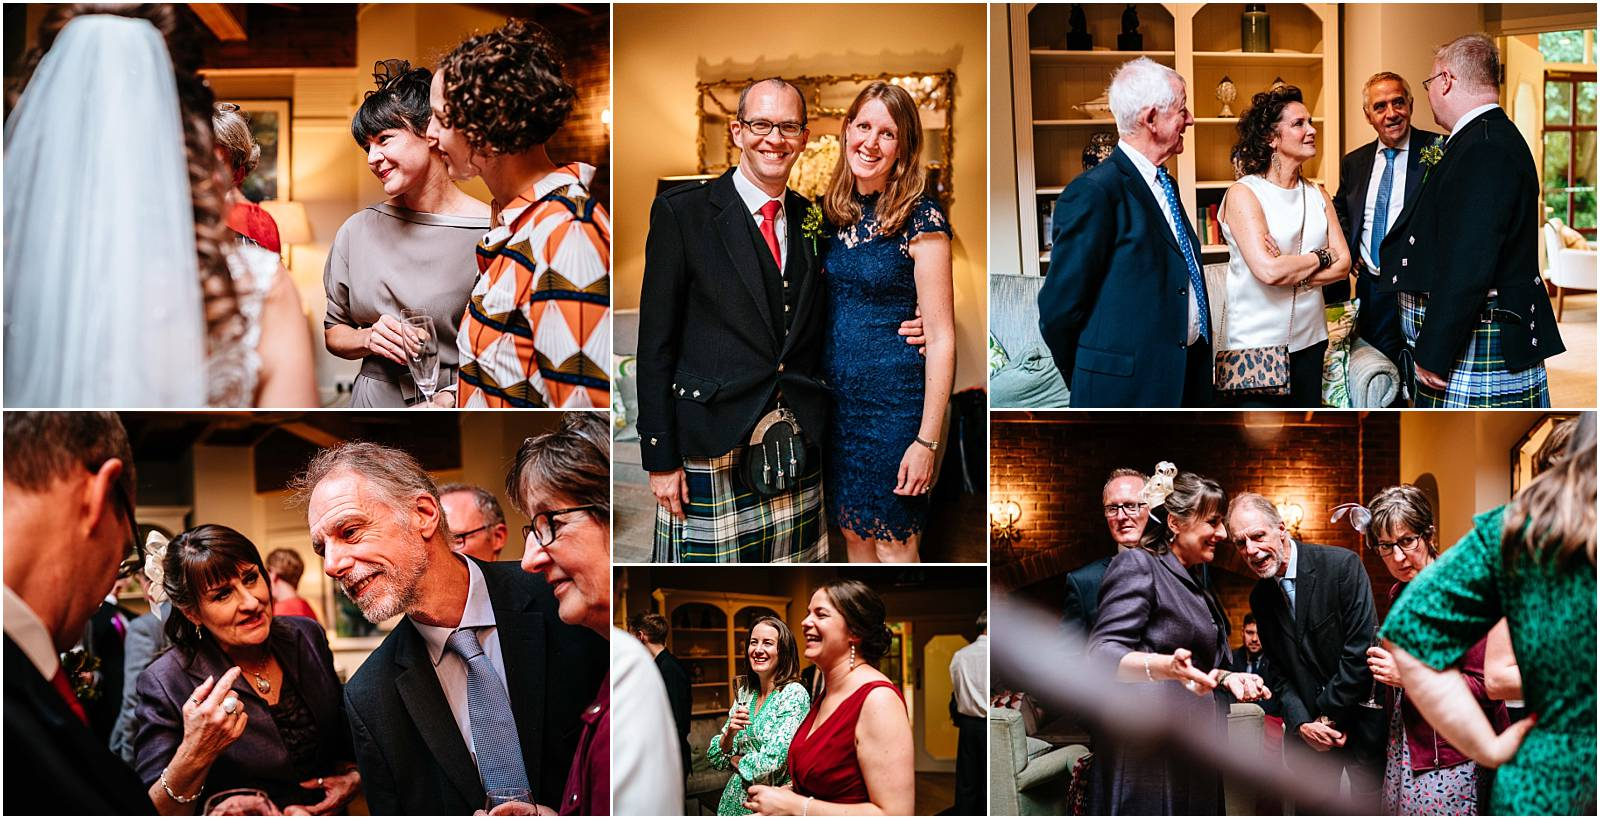 relaxed wedding photos during the drinks reception